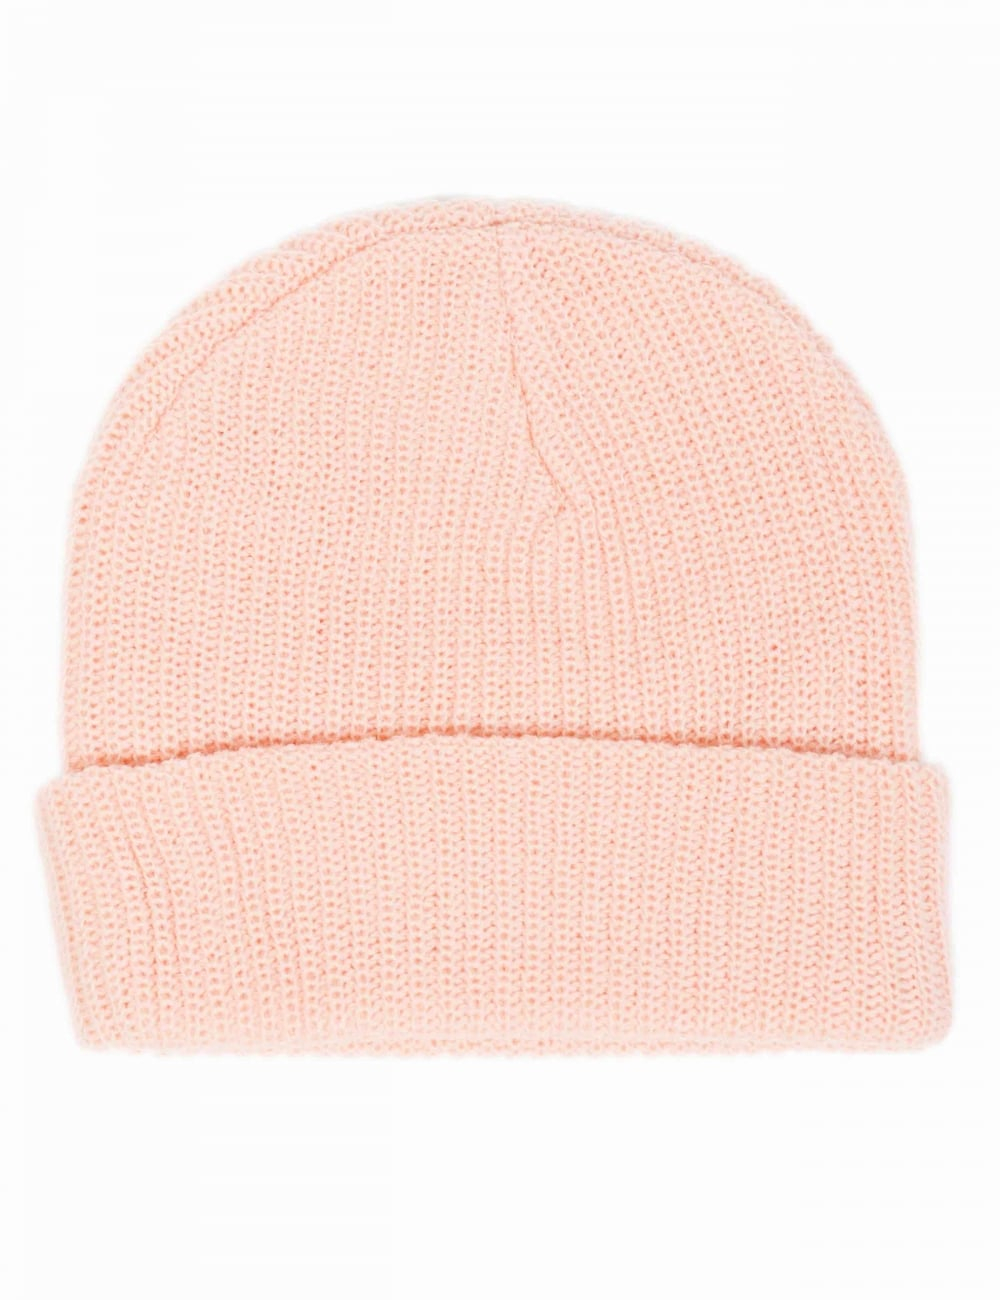 Huf Usual Beanie - Pink - Accessories from Fat Buddha Store UK fea40e396ed